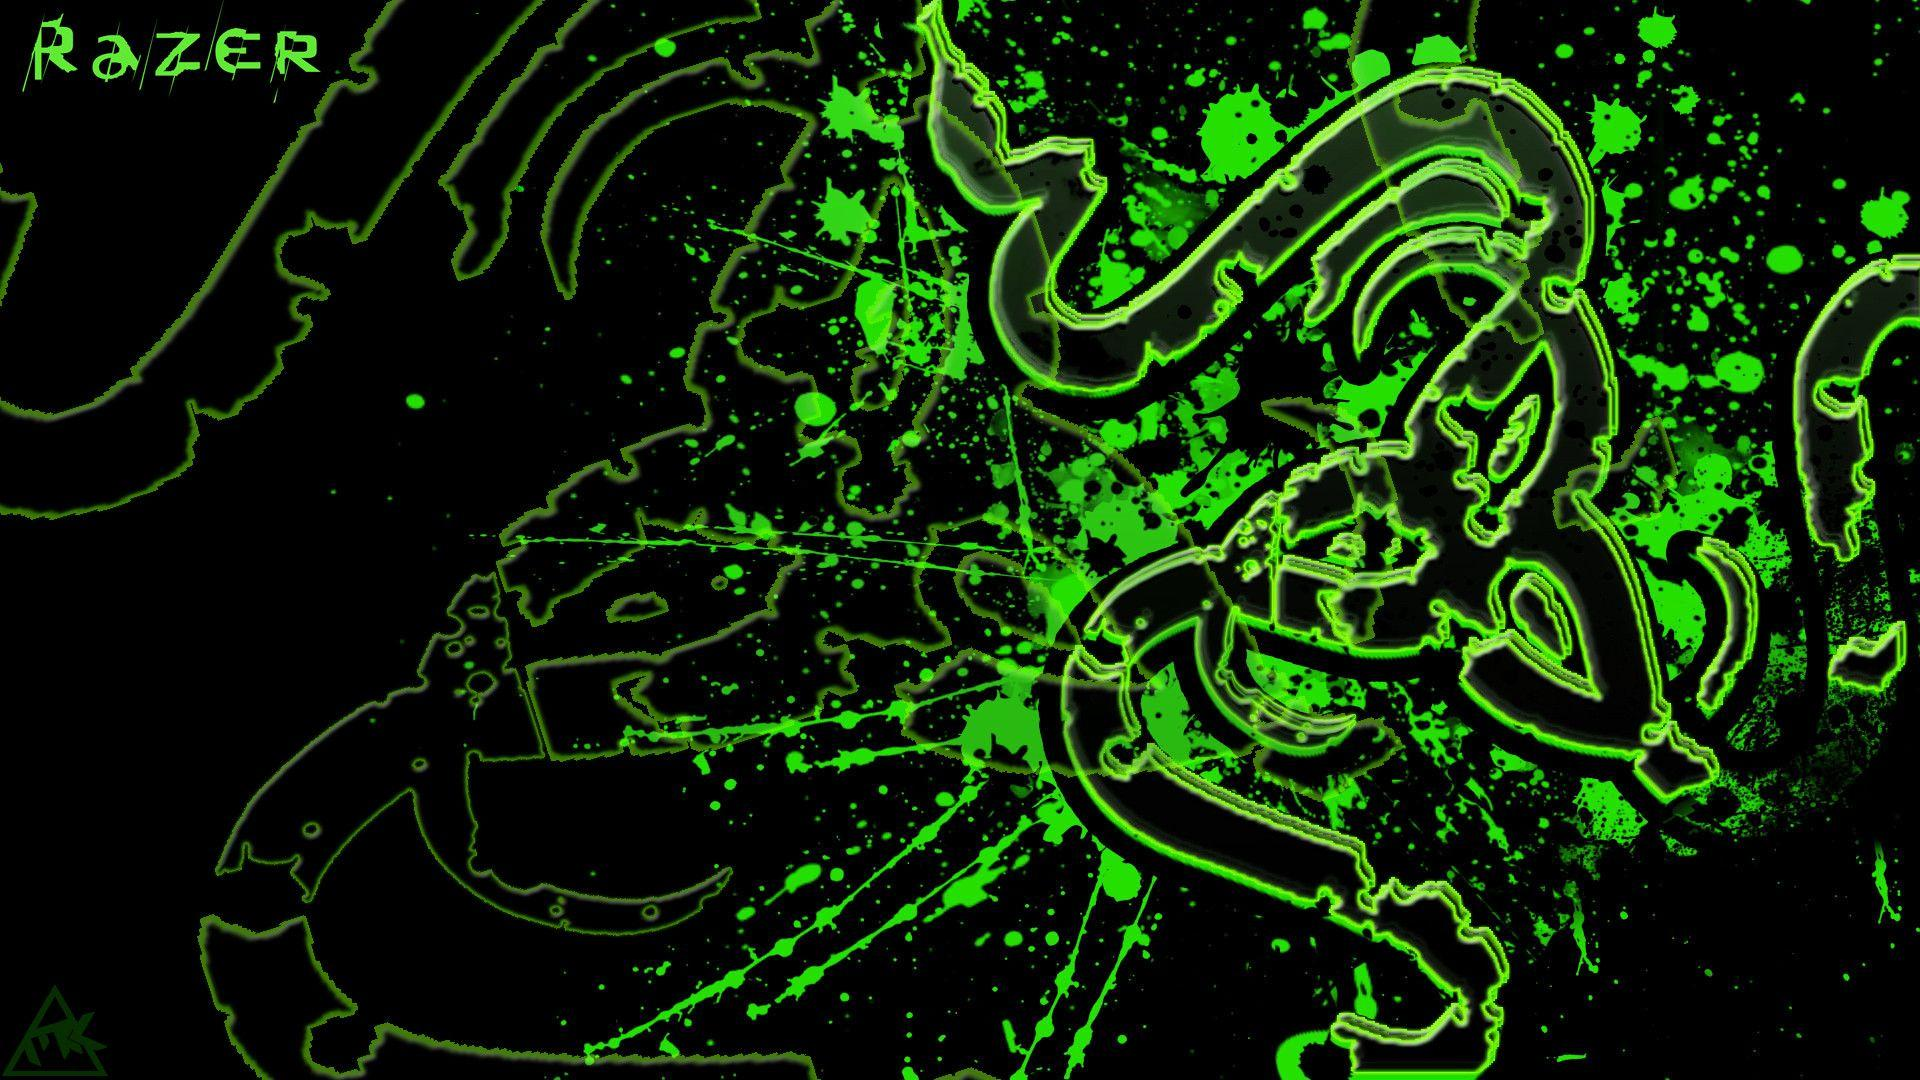 Razer Wallpaper Full Hd 227153